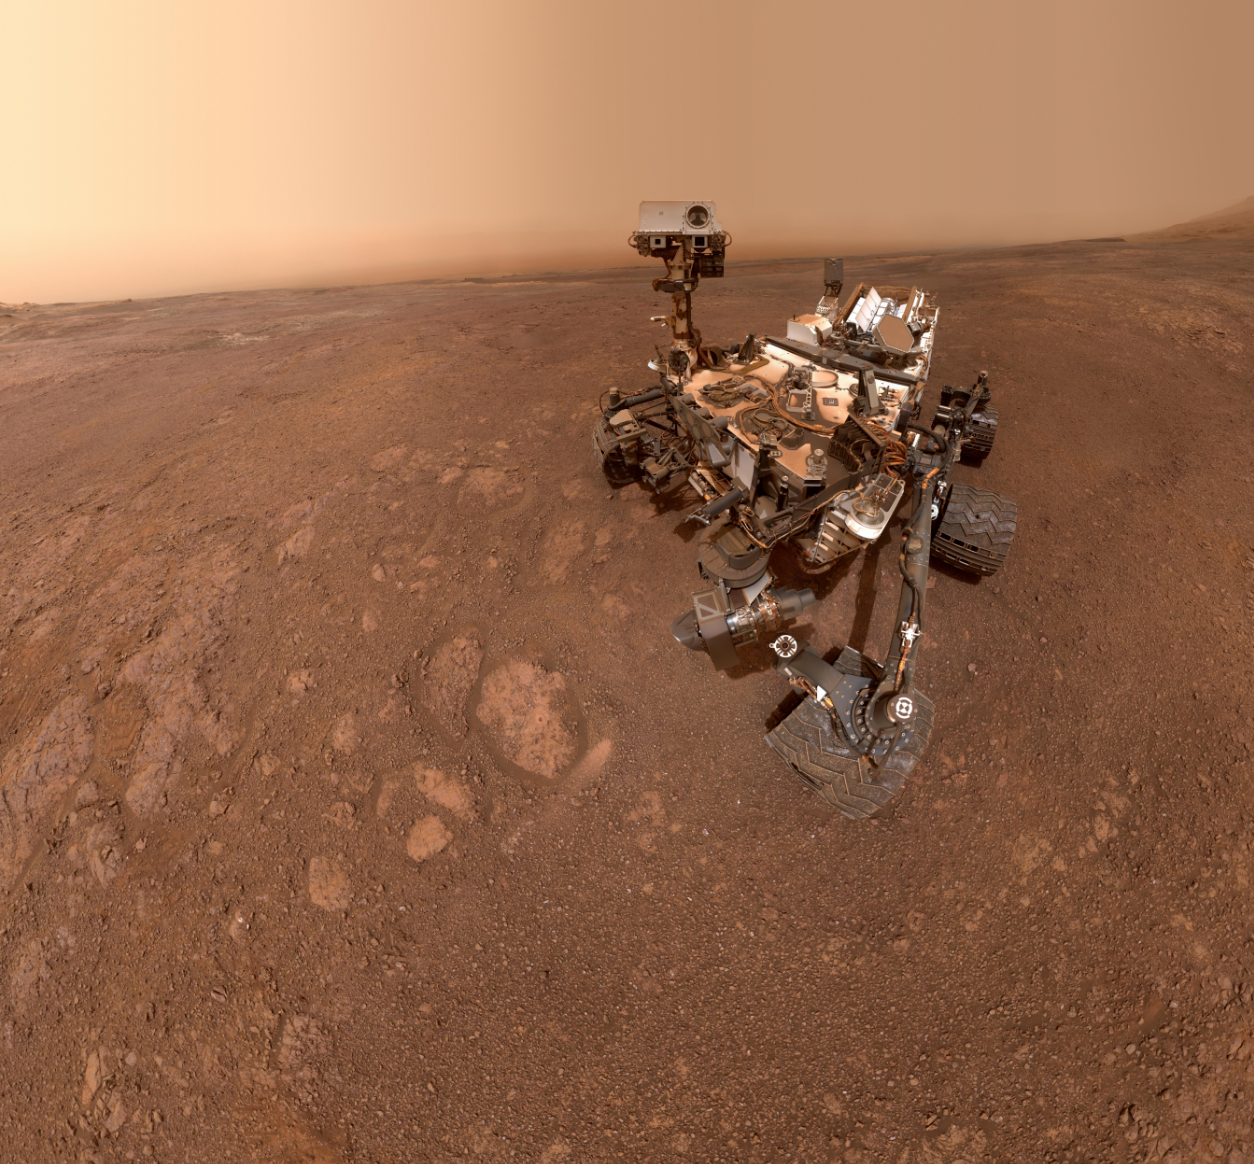 A selfie taken by NASA's Curiosity Mars rover on Sol 2291 (January 15) at the Rock Hall drill site, located on Vera Rubin Ridge.